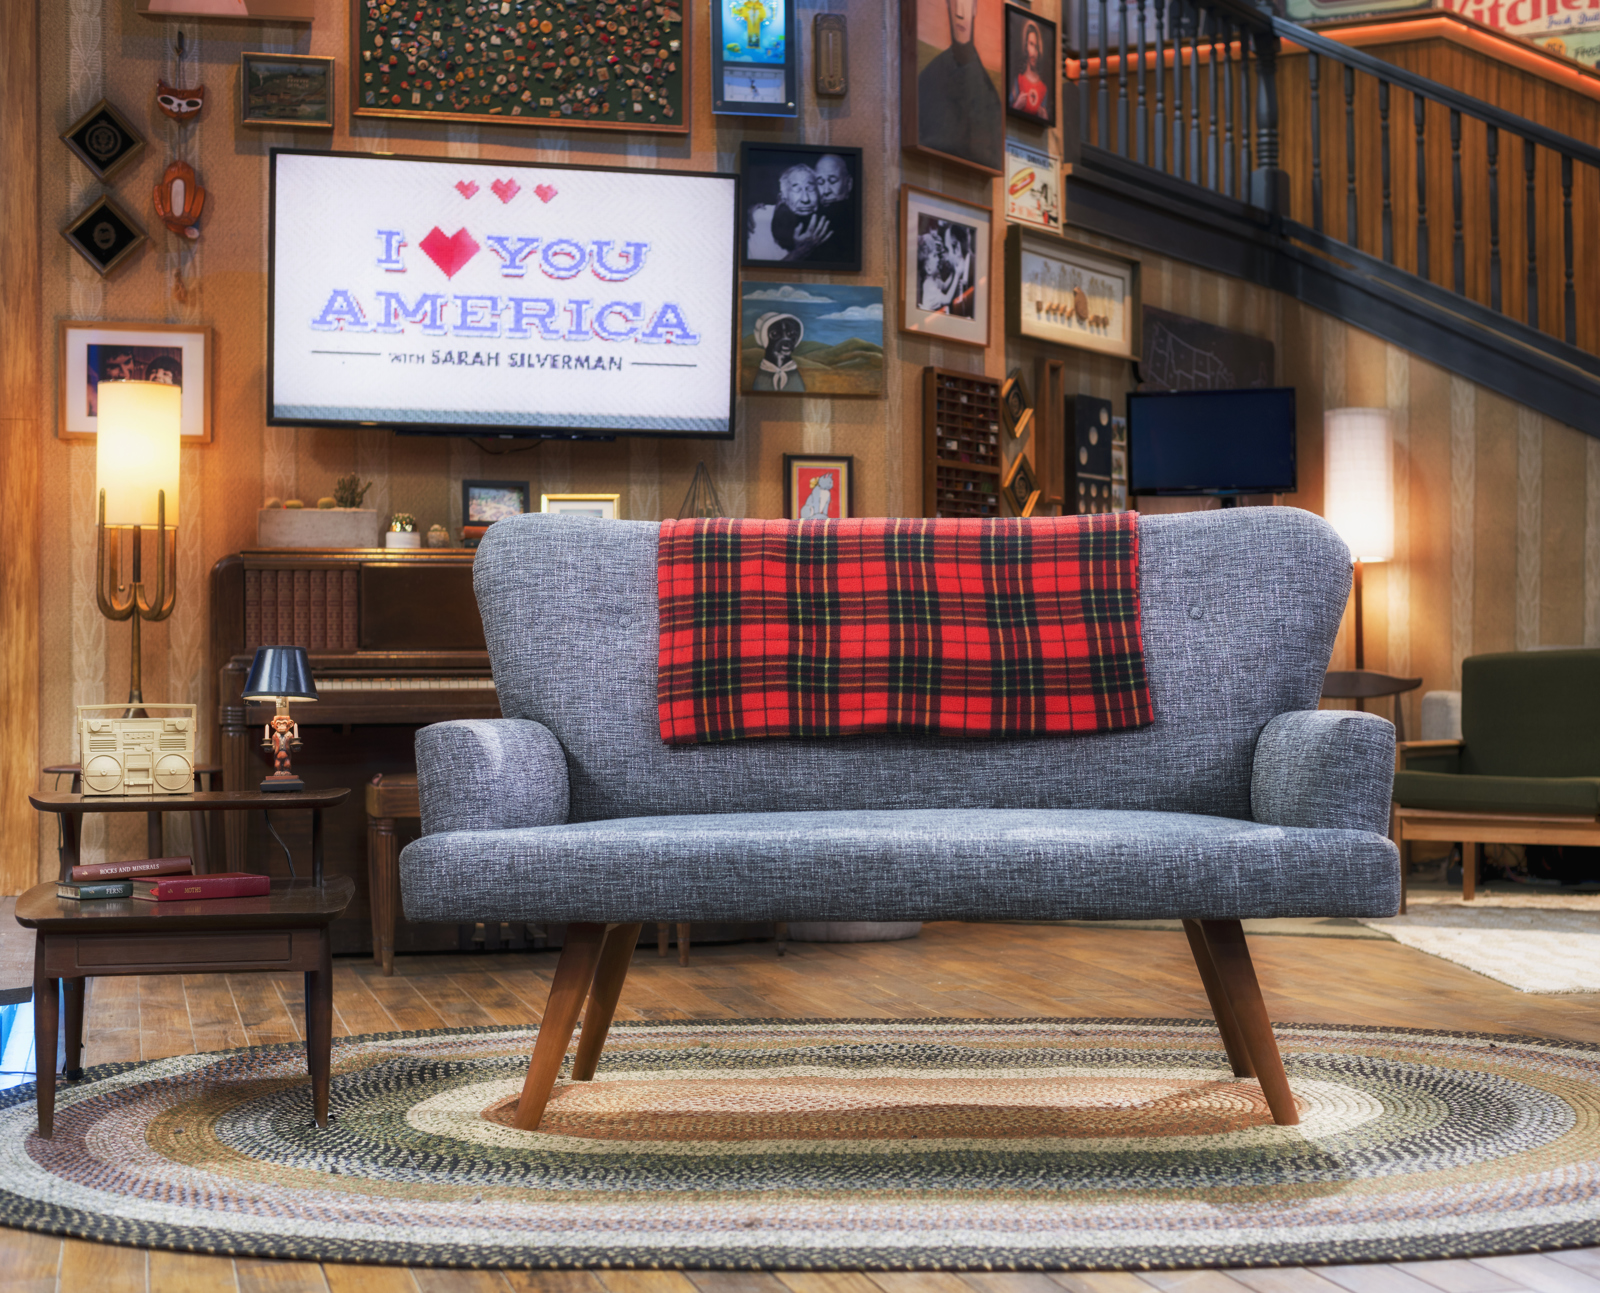 ncs_i-love-you-america-sarah-silverman-scenic-design-couch_0004